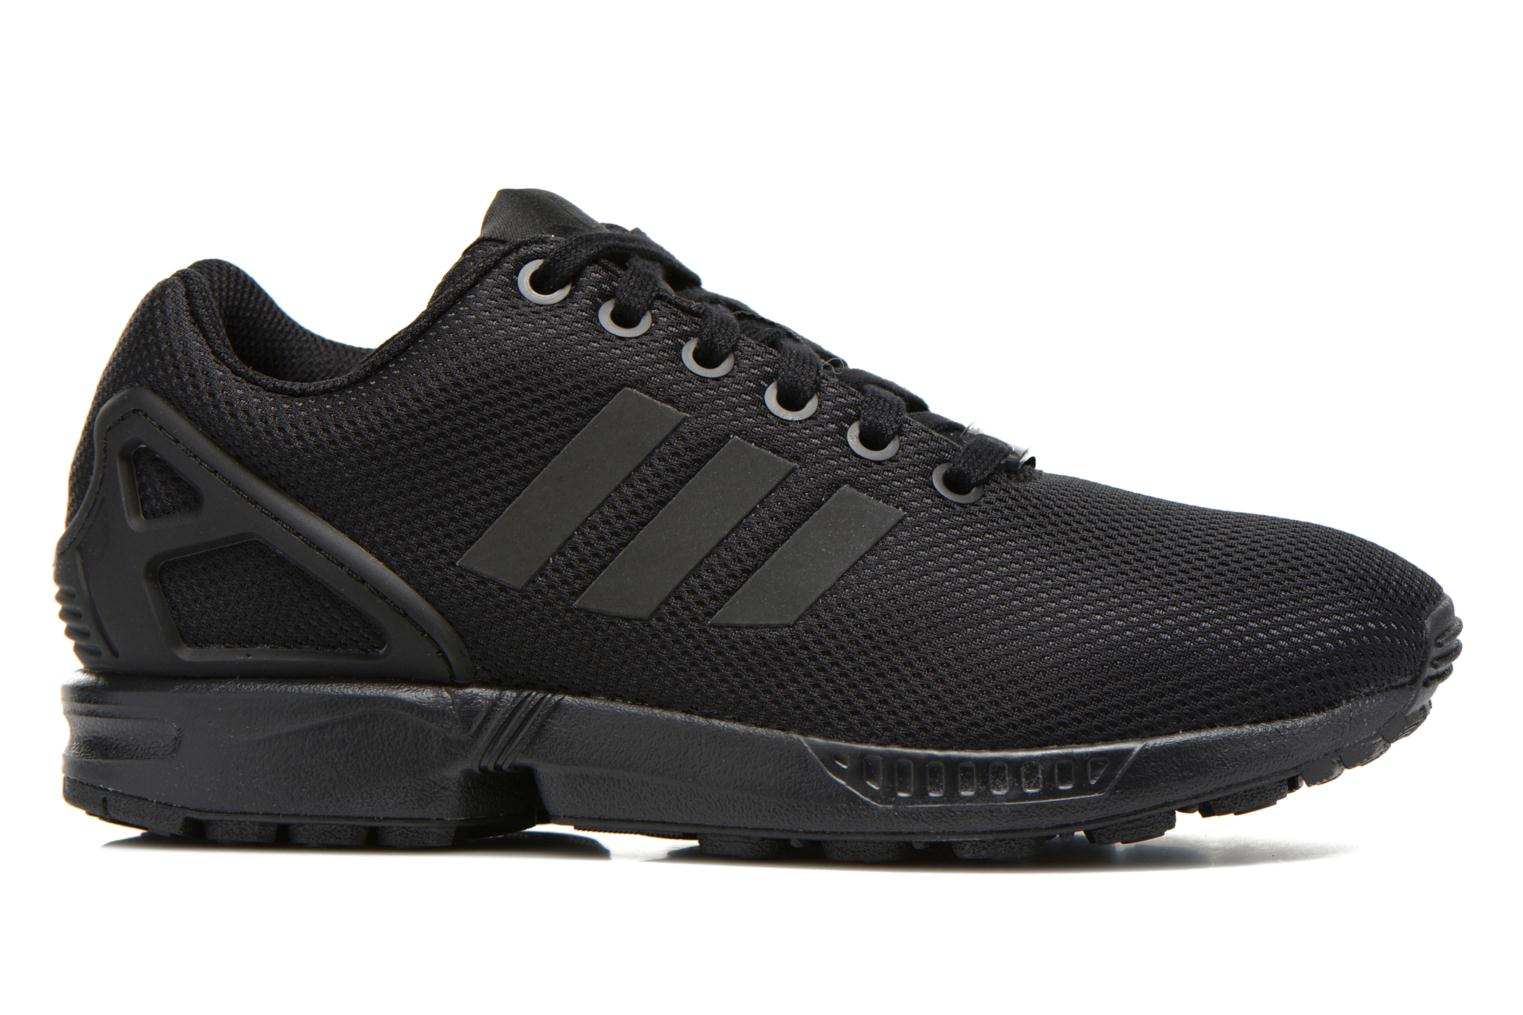 Black1-black1-white Adidas Originals Zx Flux W (Noir)